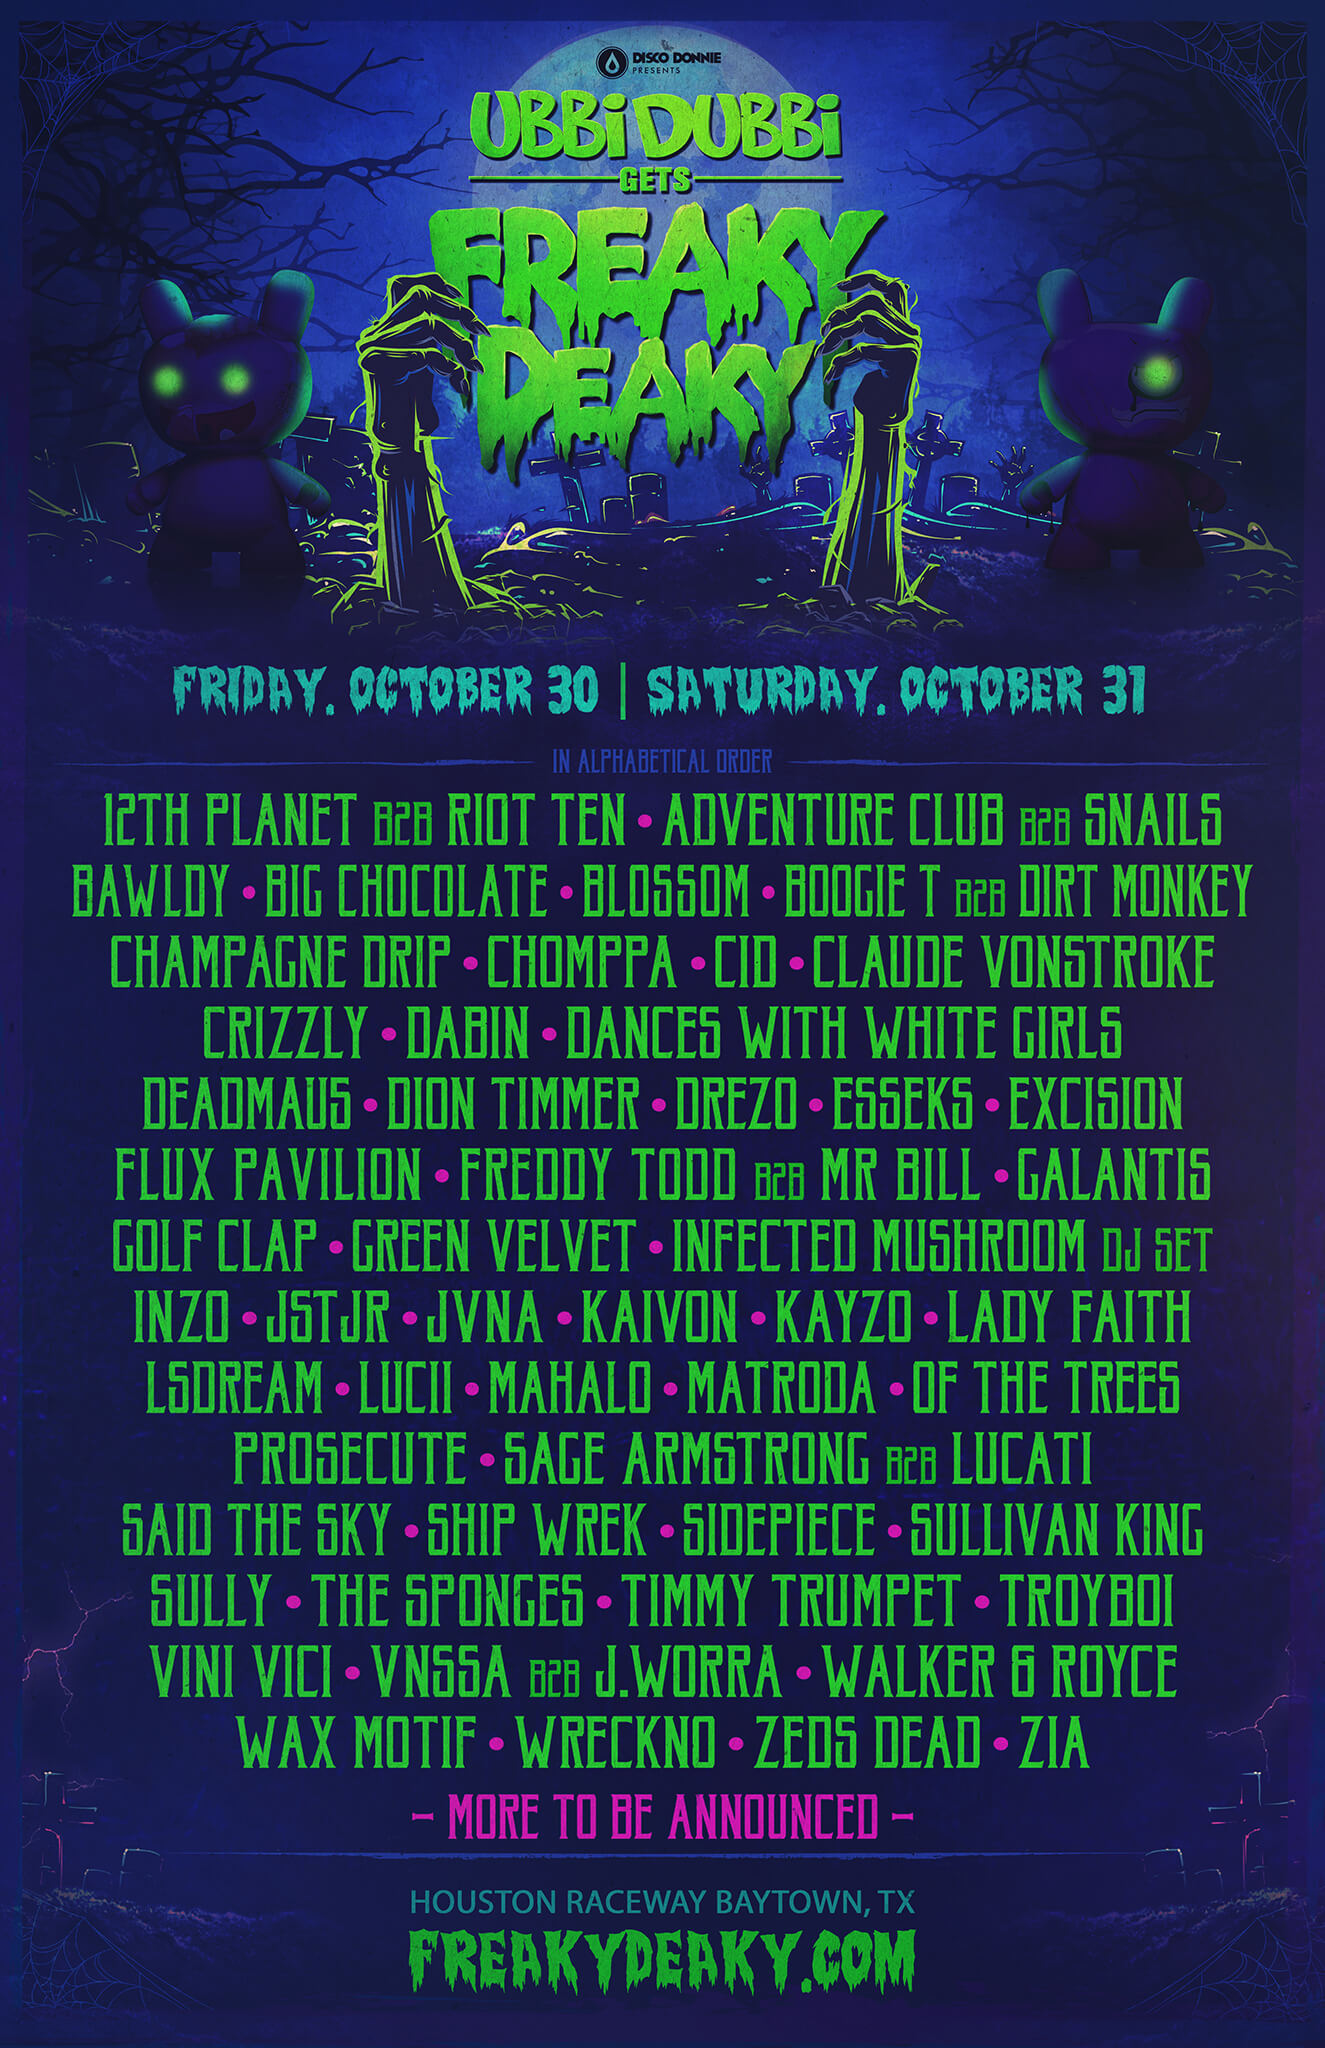 ubbi dubbi gets freaky deaky phase 1 poster